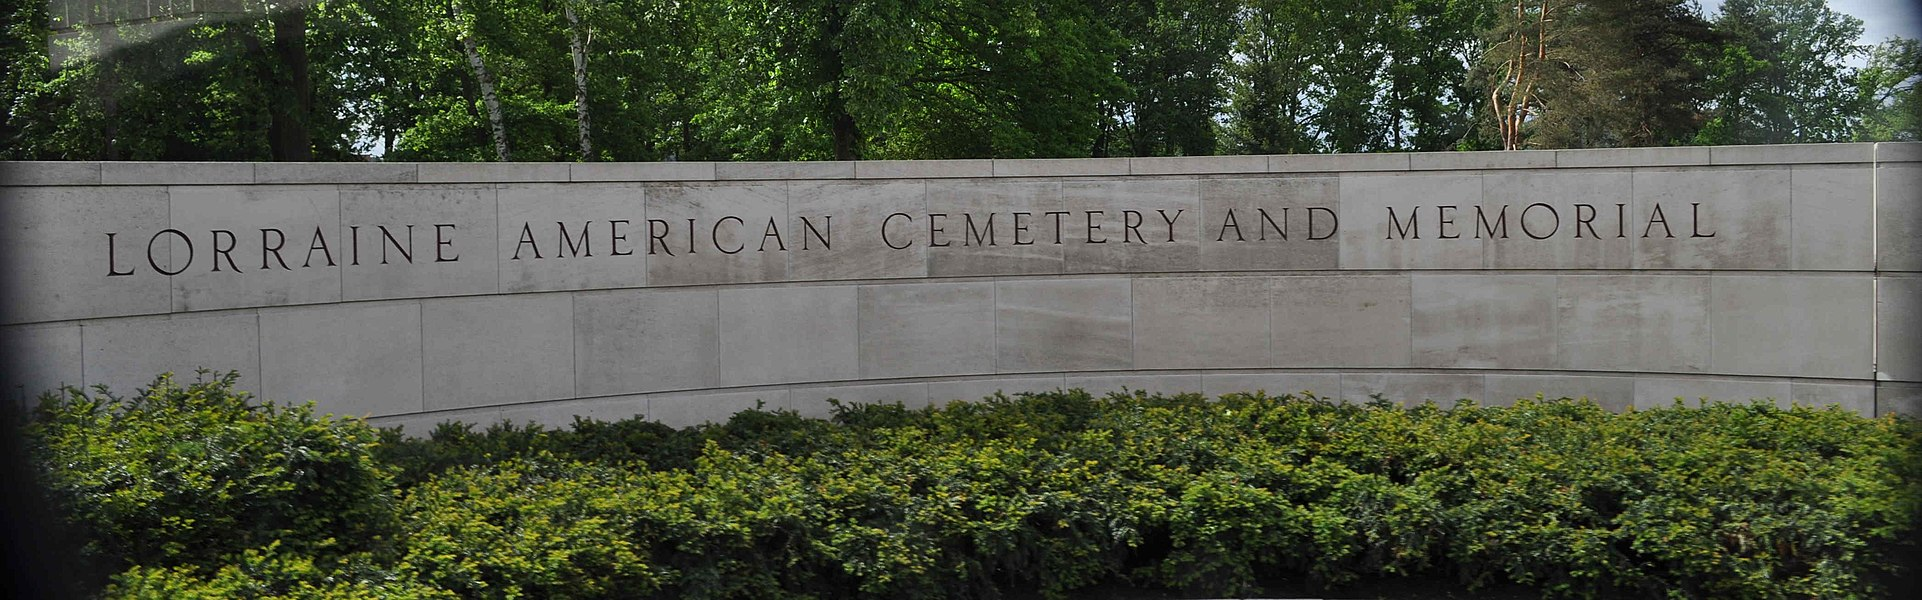 Lorraine American Military Cemetery, entrance sign